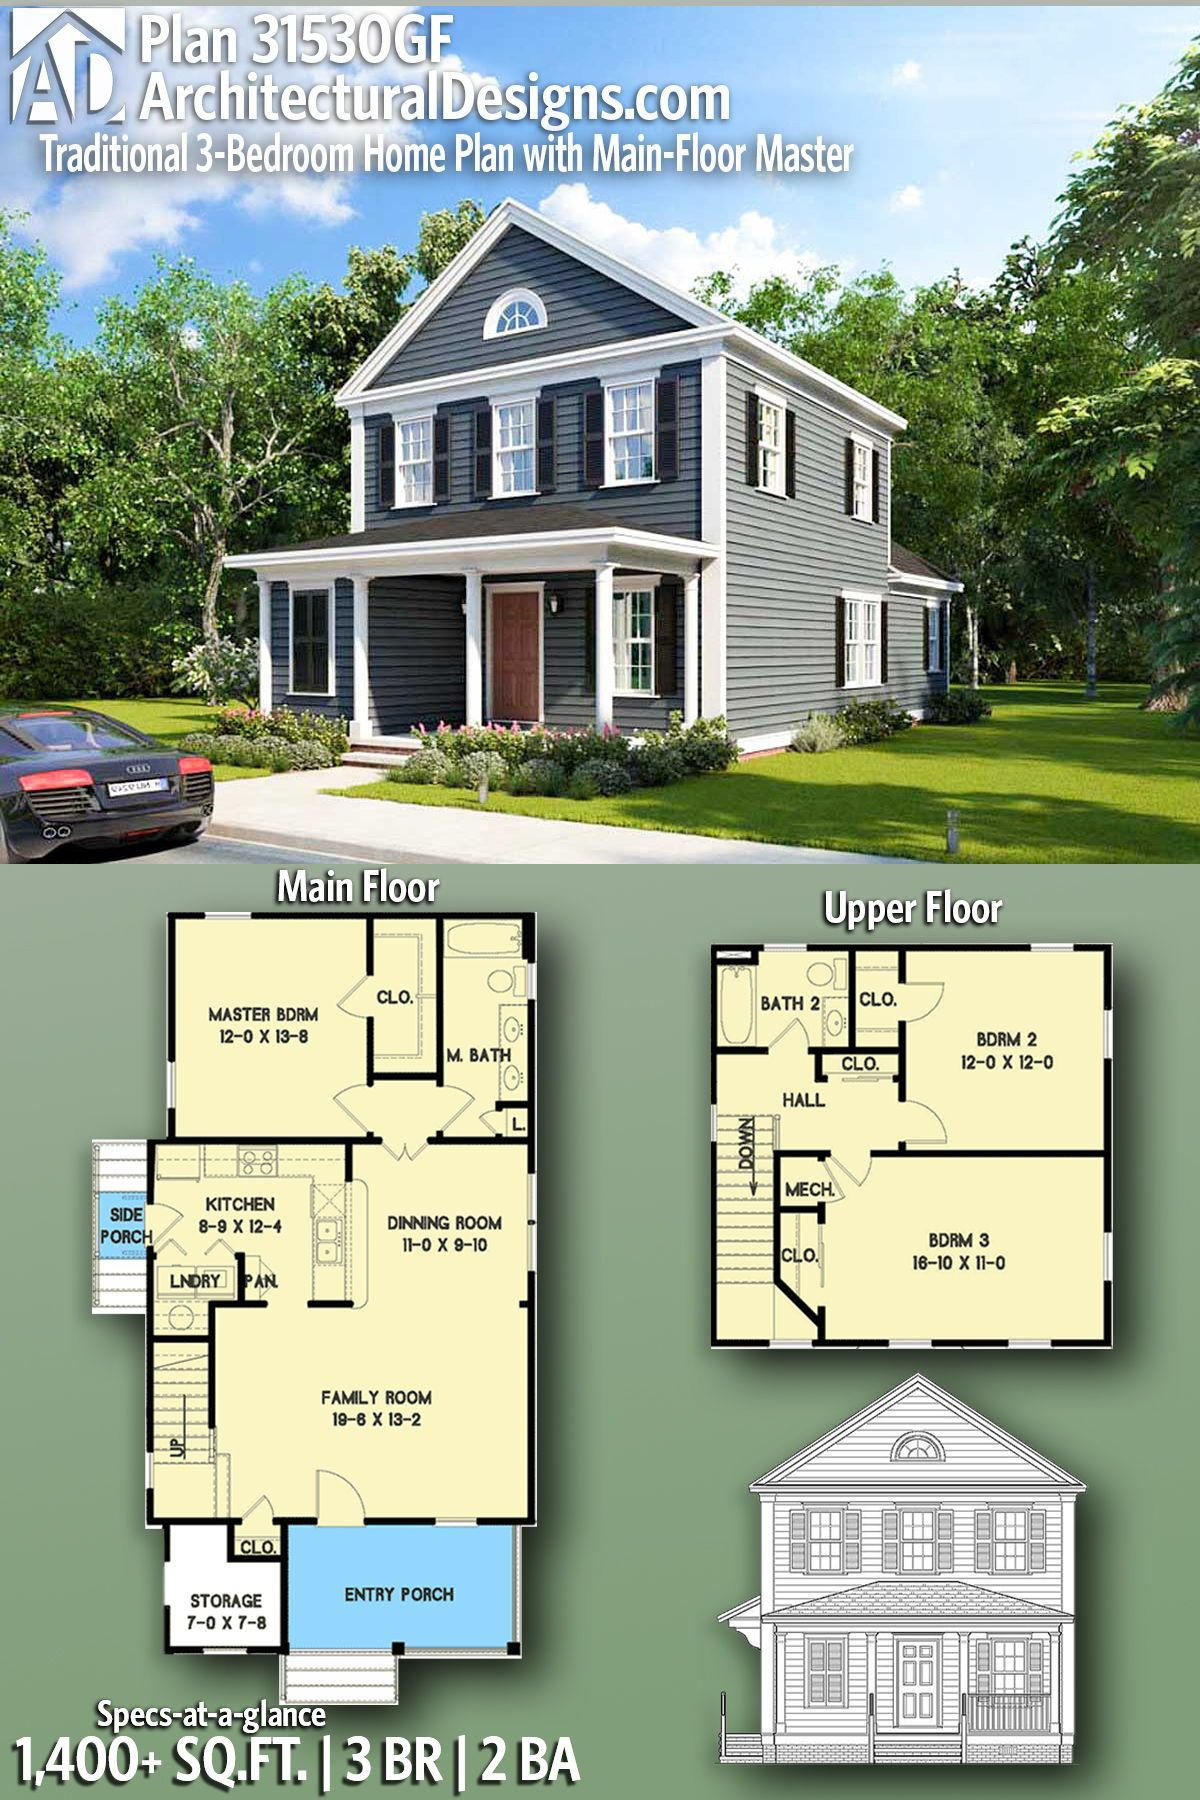 Plan 31530gf Traditional 3 Bedroom Home Plan With Main Floor Master Craftsman House Plans New House Plans Sims House